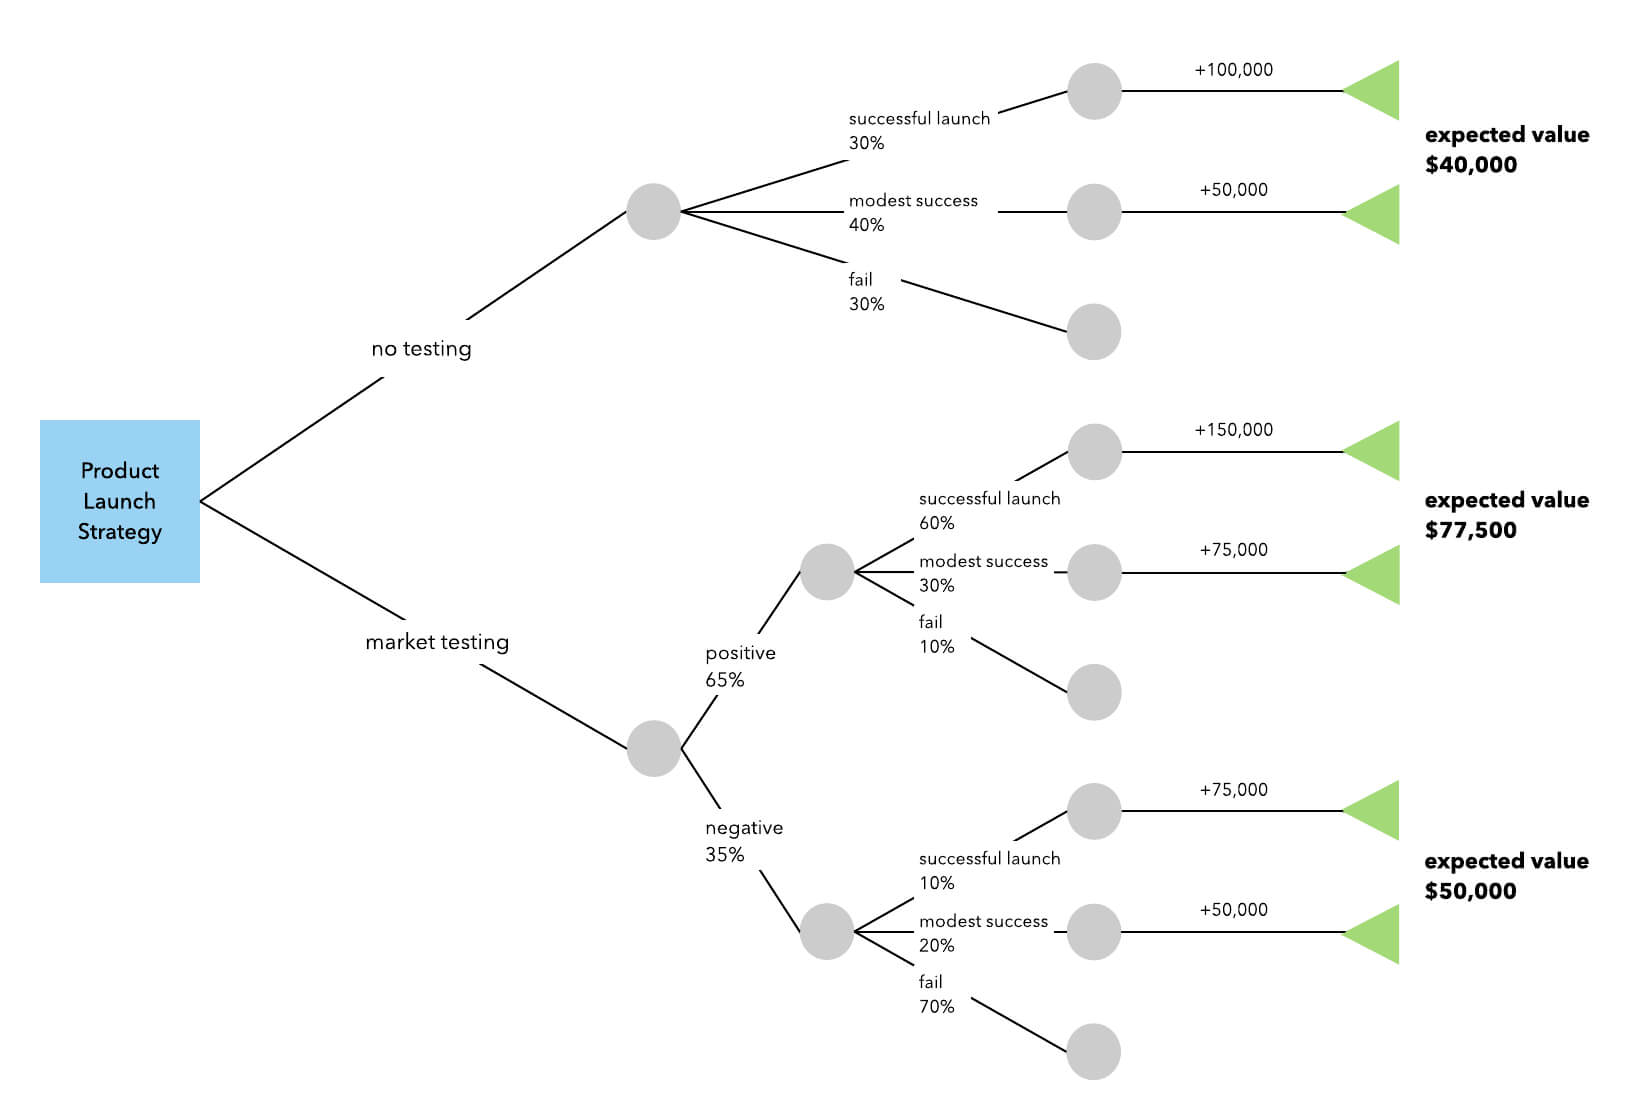 How To Make A Decision Tree In Word | Lucidchart Blog With Blank Decision Tree Template